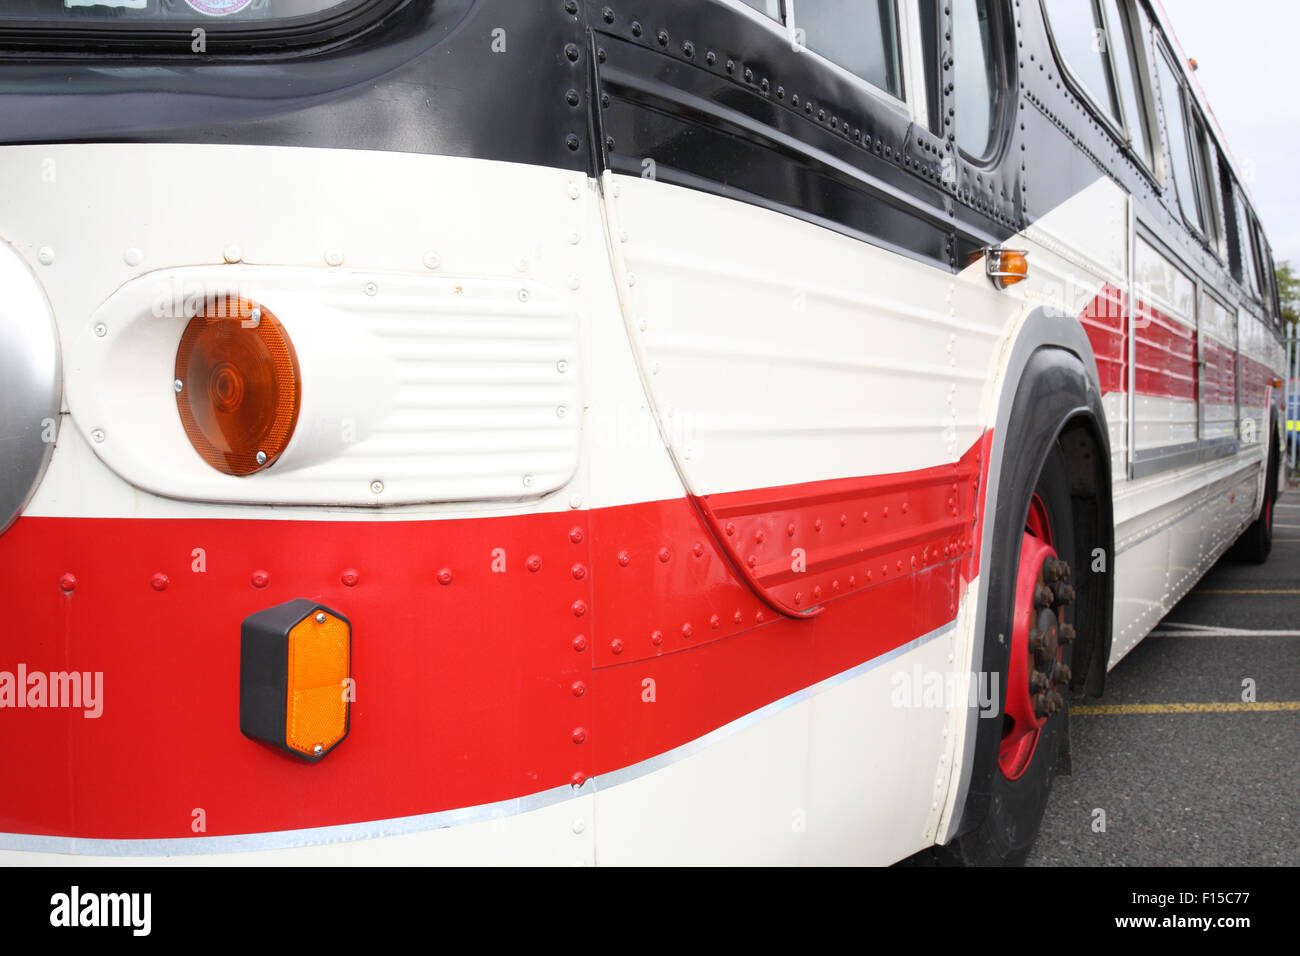 General motors fishbowl bus - Stock Image